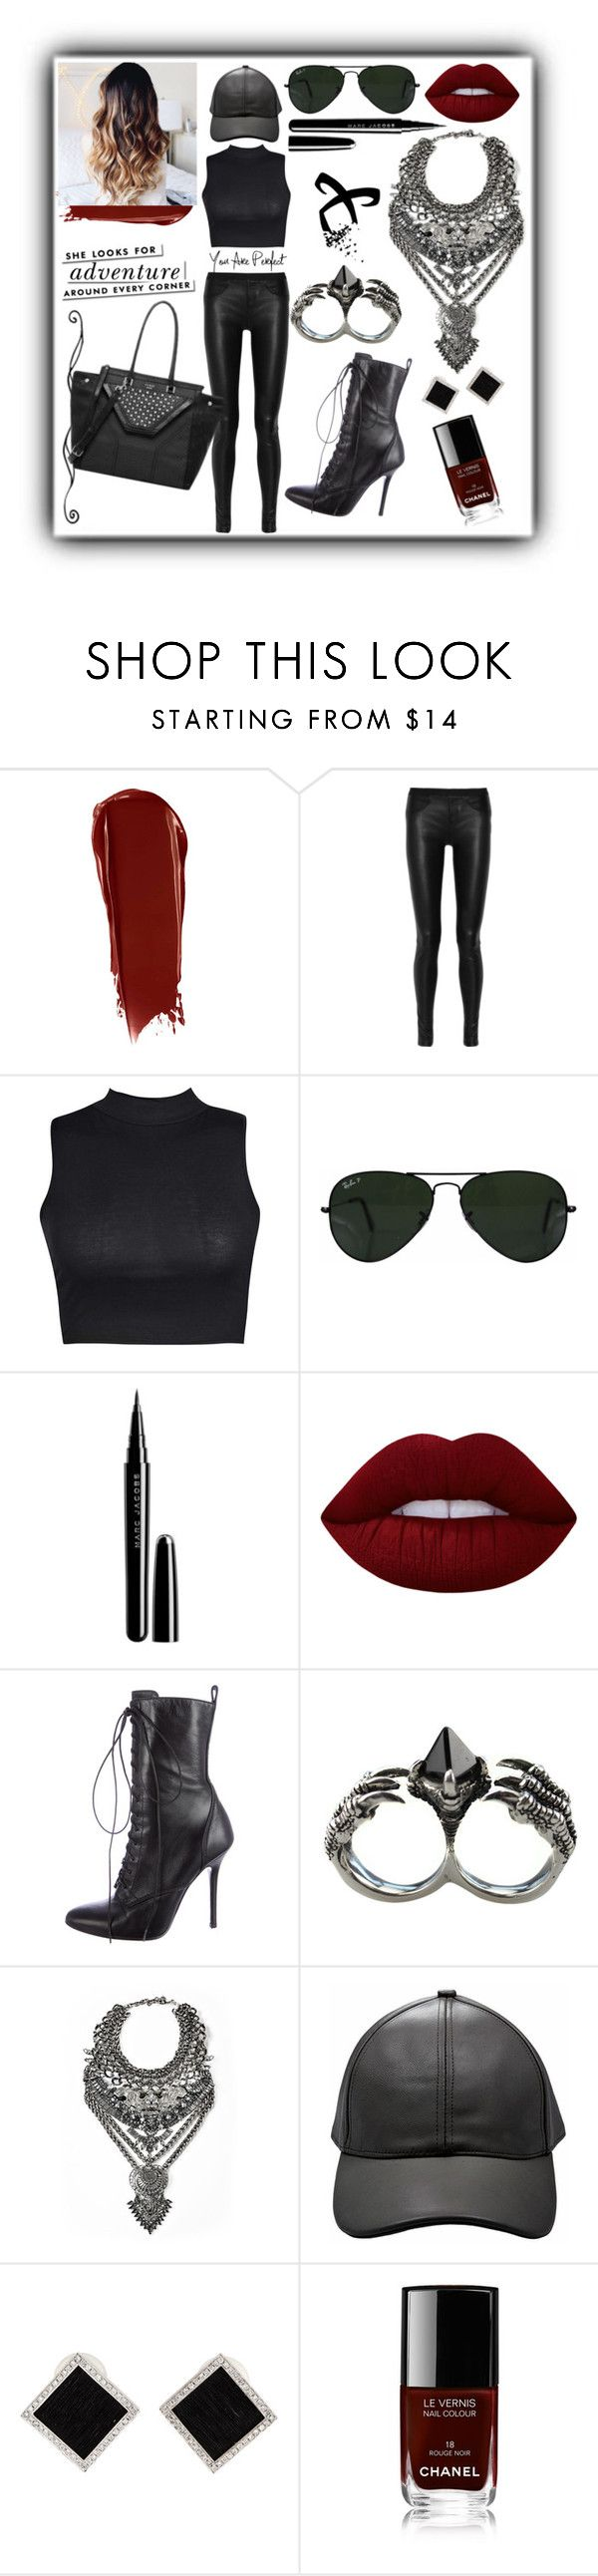 """""""Huntress"""" by nsrogsy3 ❤ liked on Polyvore featuring NARS Cosmetics, Helmut Lang, Boohoo, Ray-Ban, Marc Jacobs, Lime Crime, Giuseppe Zanotti, KD2024, Kate Spade and Yvel"""